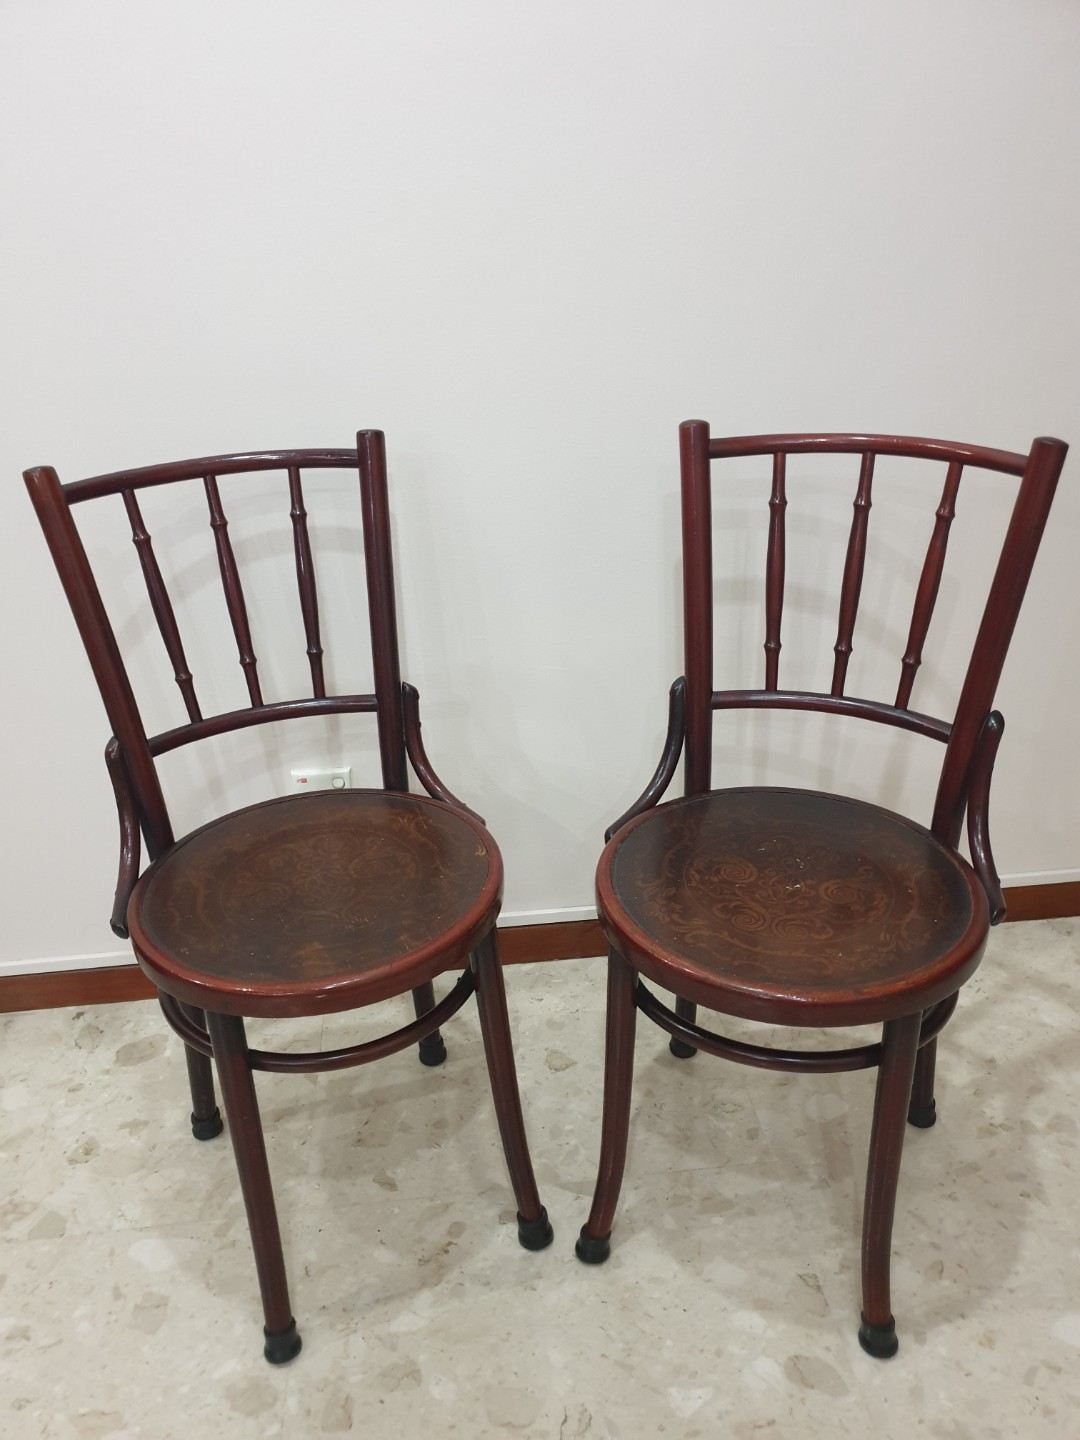 60 Year Old Antique Wooden Chairs Furniture Tables Chairs On